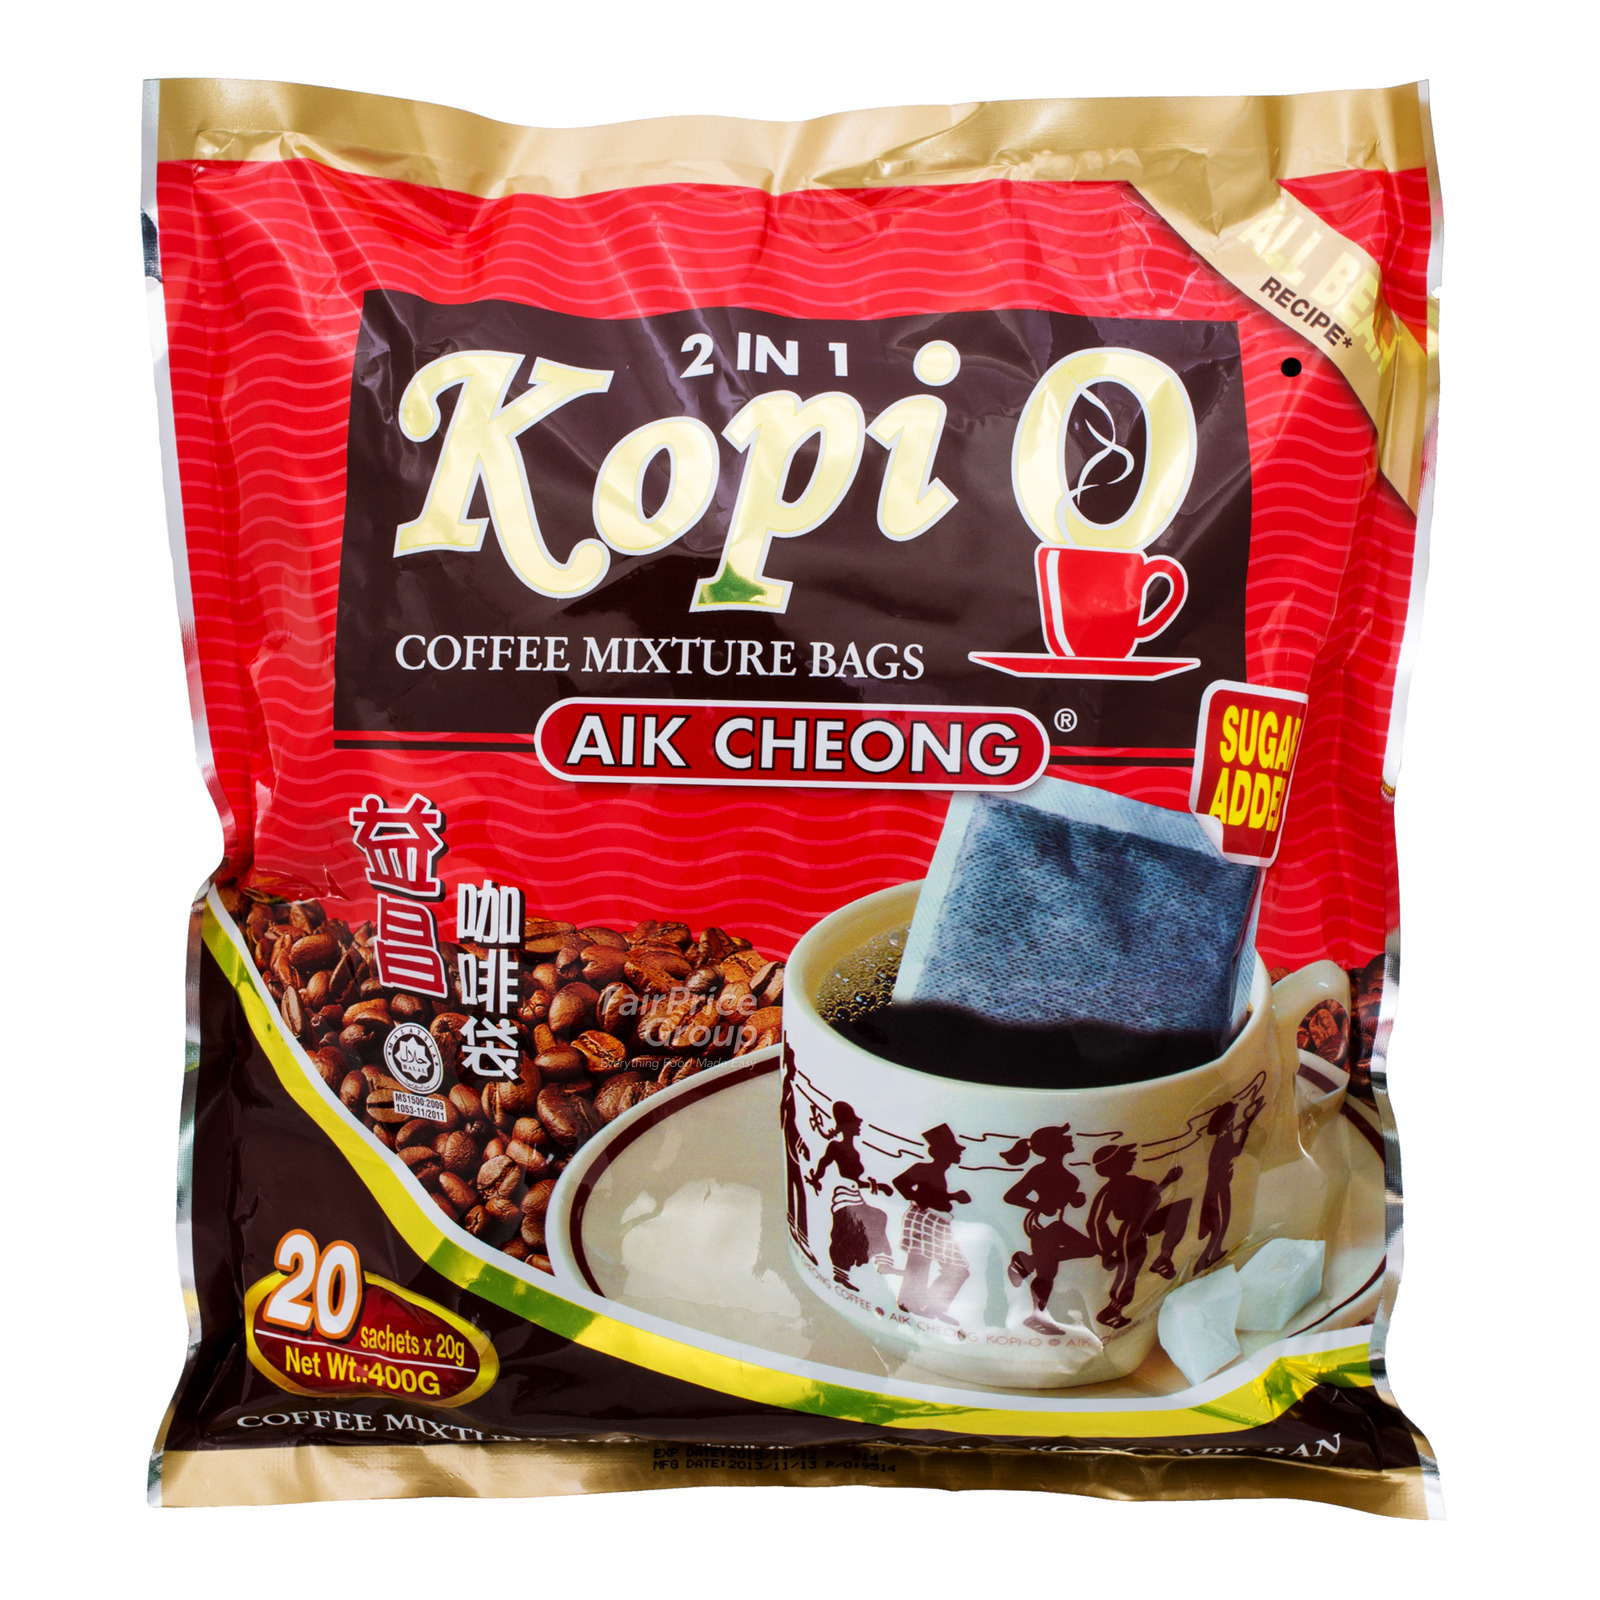 Gold Kili 2-In-1 Kopi O Premium Coffee Mixture Bag With Sugar Added